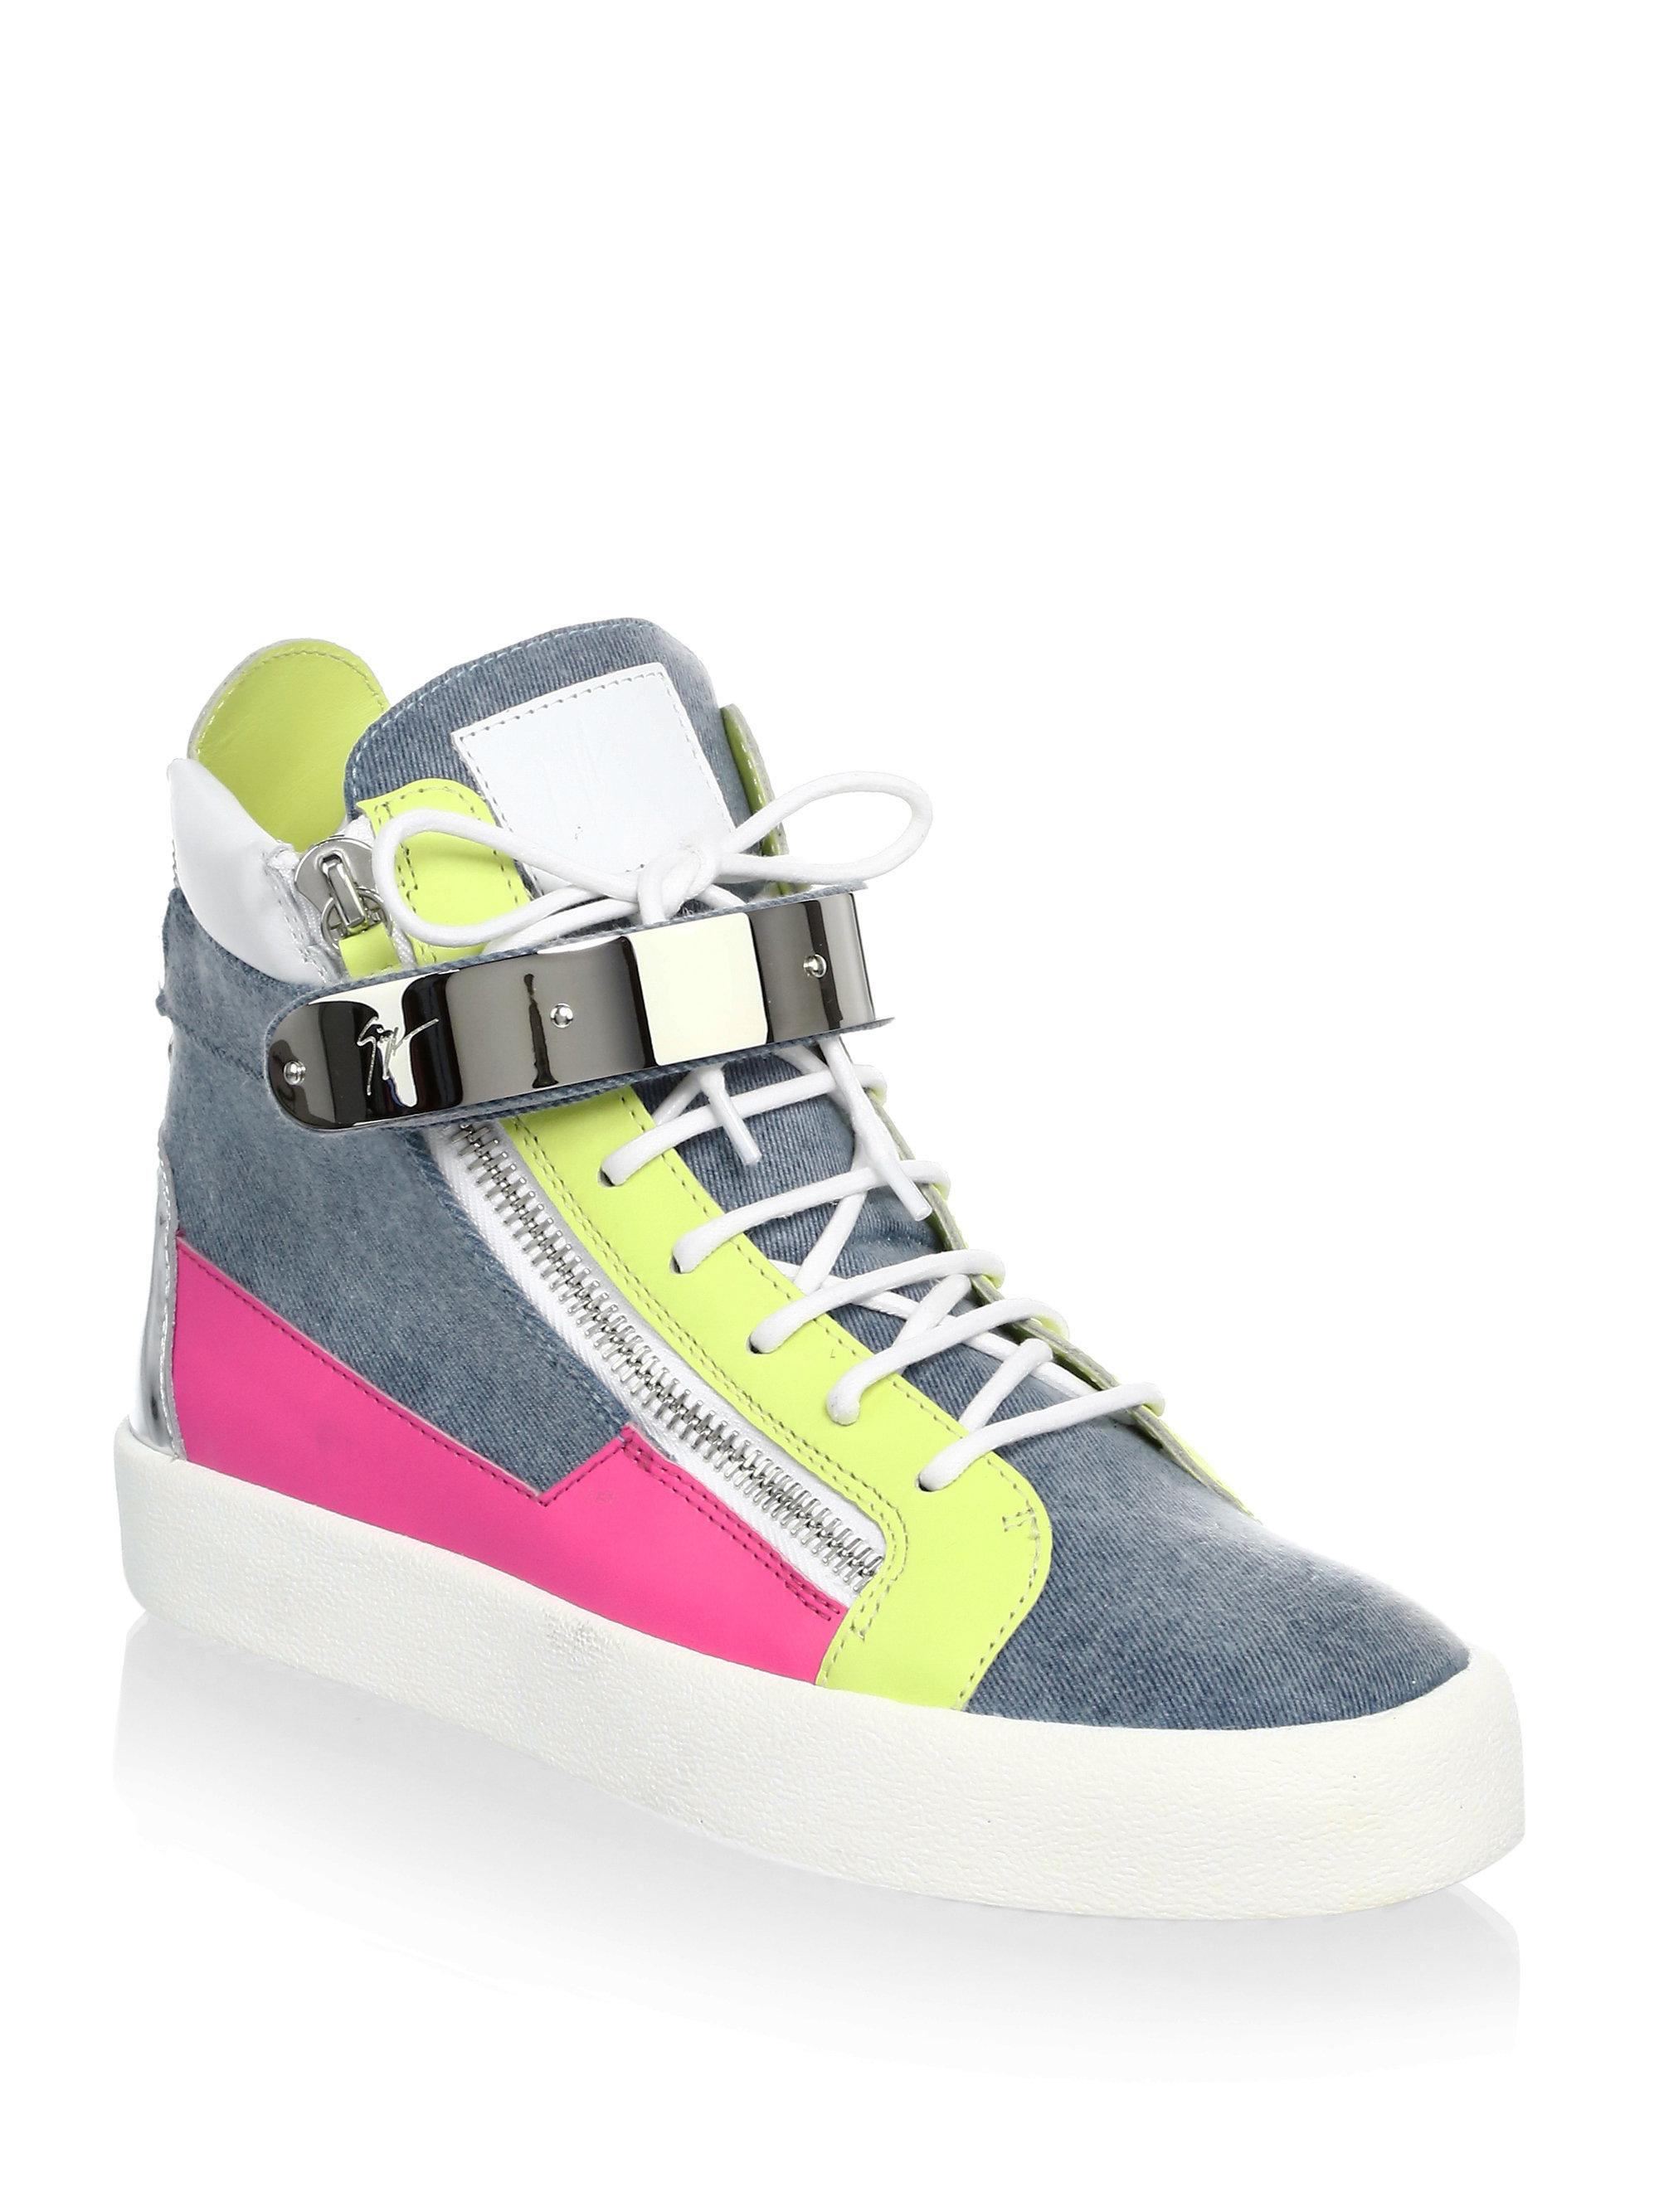 eb0fb87a8003f Giuseppe Zanotti Denim & Leather High-top Sneakers in Blue - Lyst